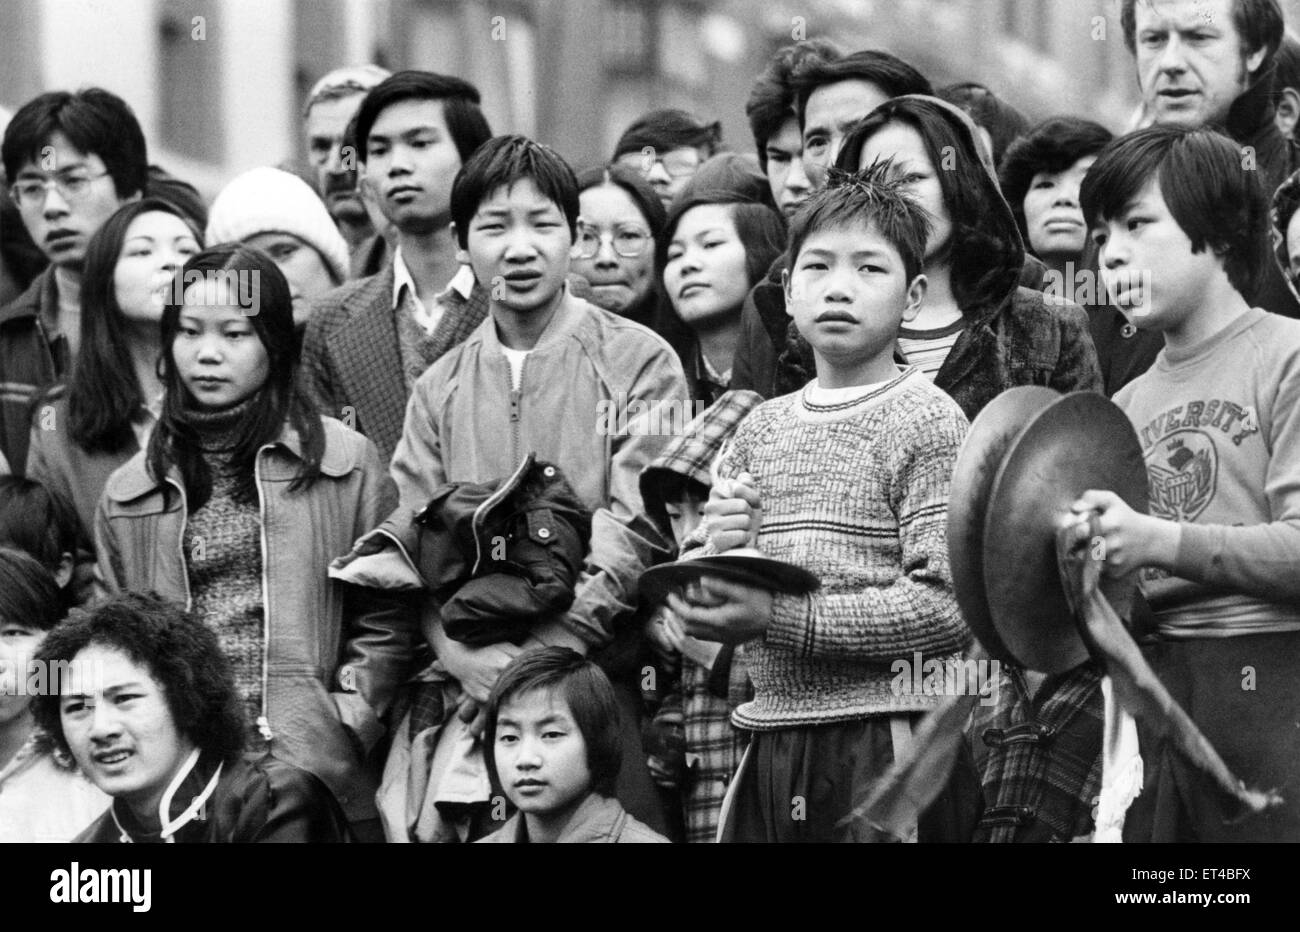 Liverpool's Chinese community ushered in the Year of the Snake with traditional celebrations. Spectators brave - Stock Image